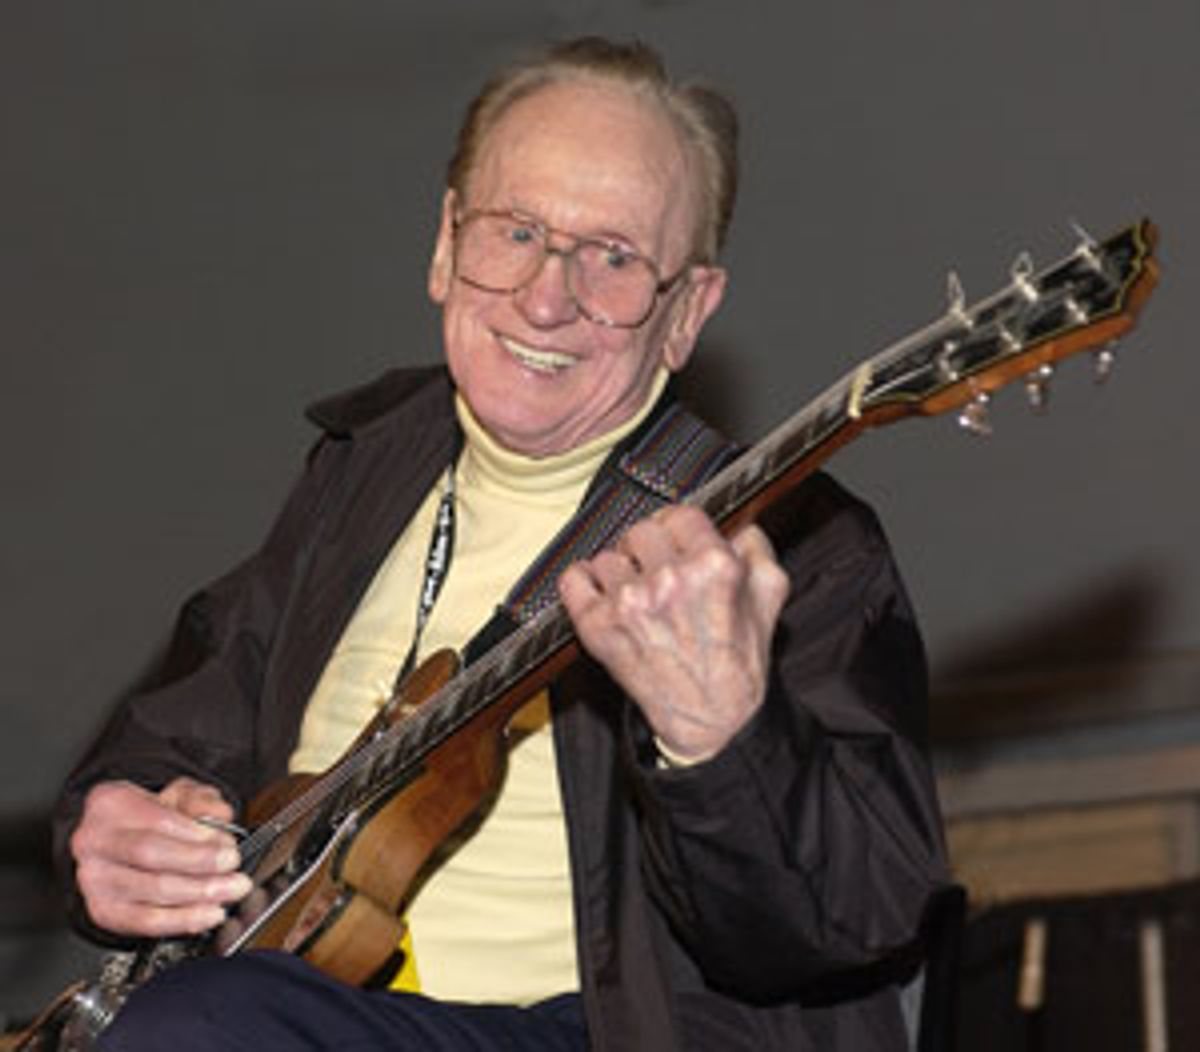 The Wizard of Waukesha Moves On: Les Paul - 1915-2009